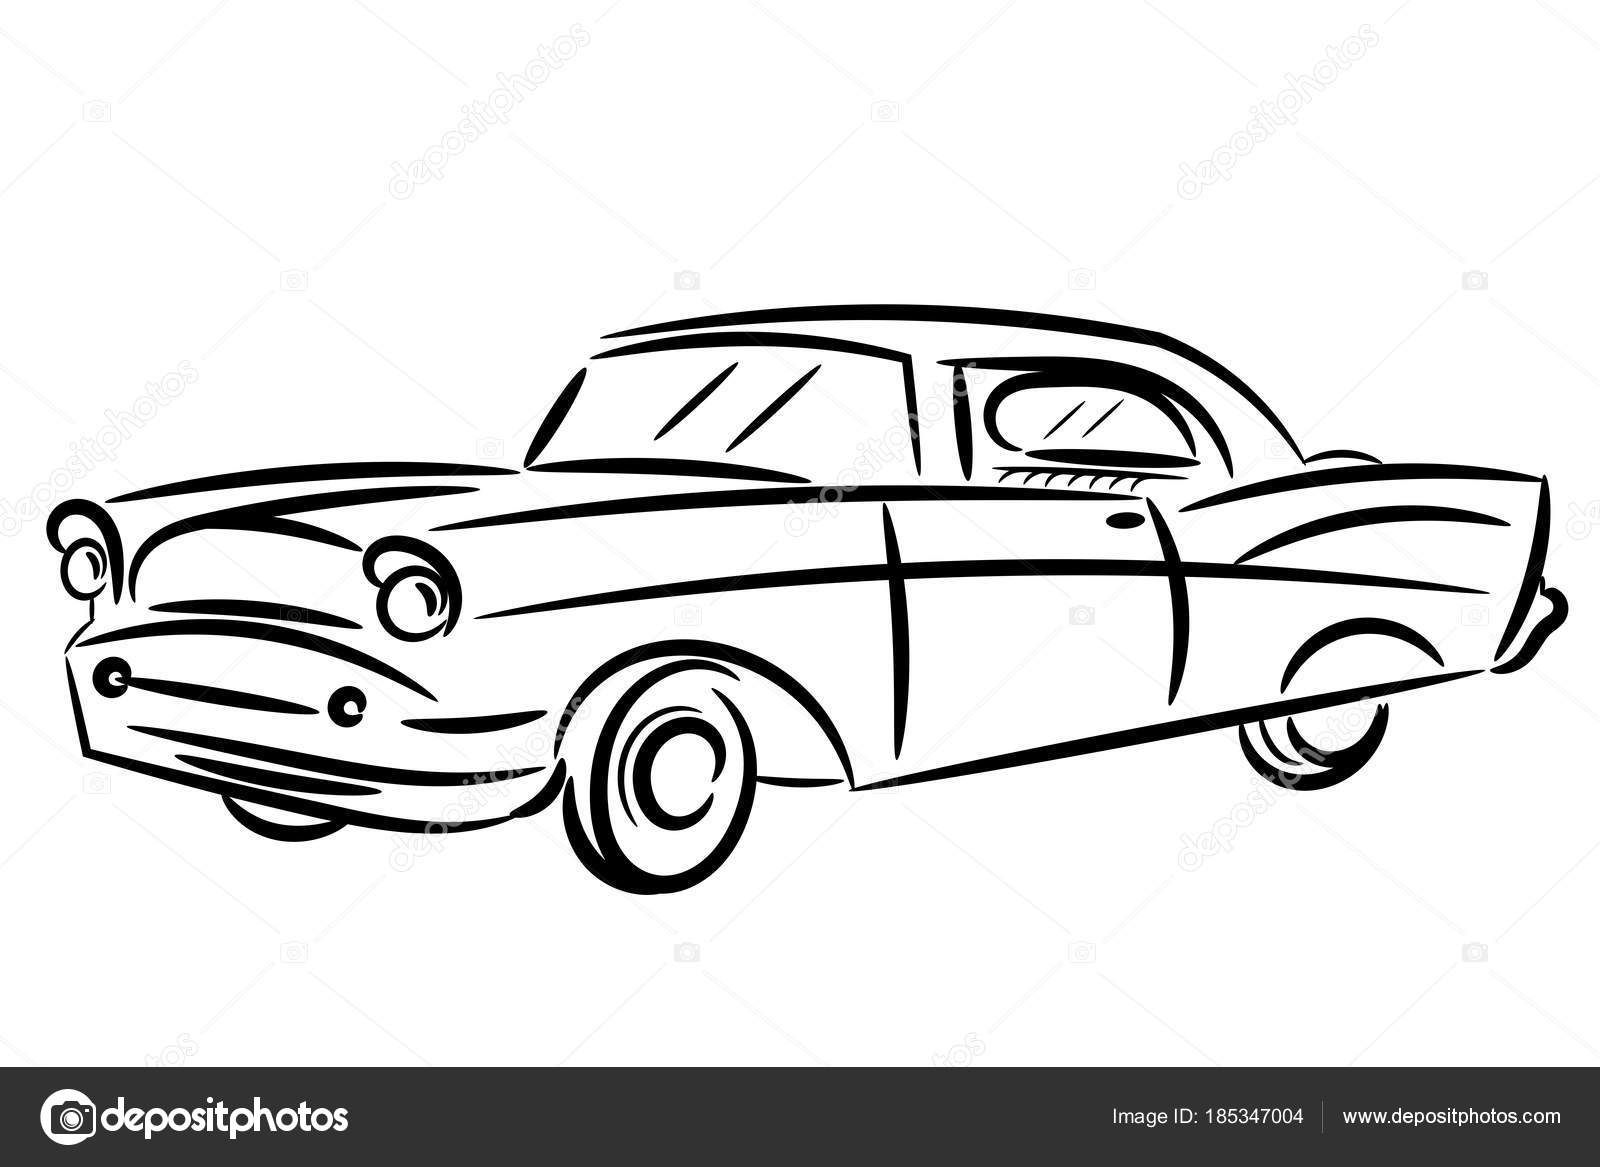 Motor also Cappuccino also Template Logo in addition Stock Illustration Vintage Retro Car Stylized Isolated also Checkered Flag Clip Art 9511. on vintage car illustration